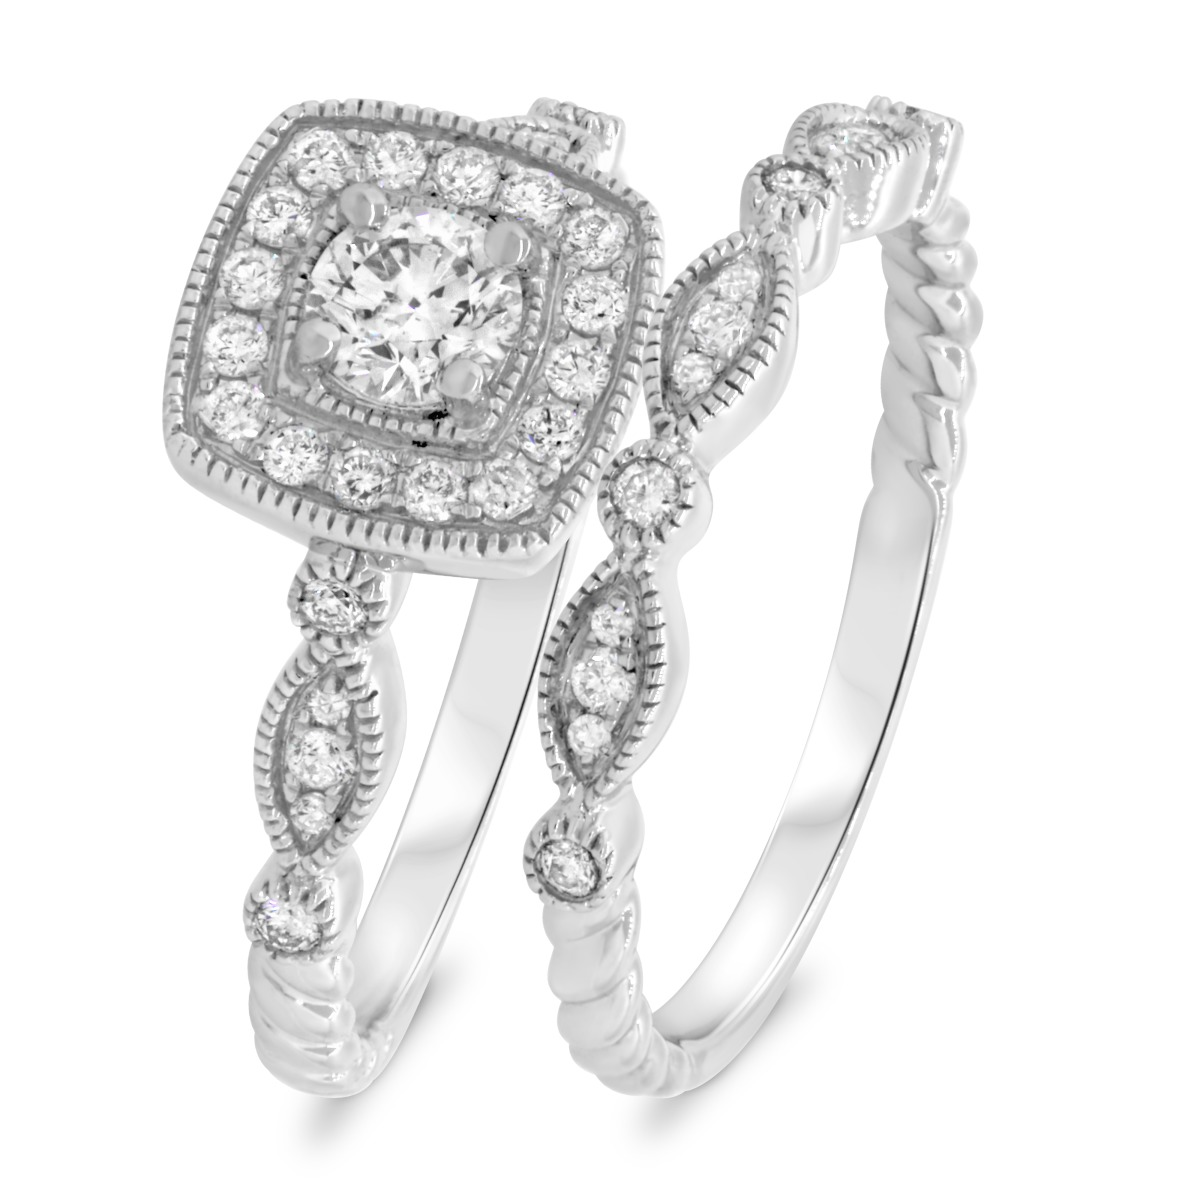 2/3 CT. T.W. Diamond Matching Bridal Ring Set 10K White Gold